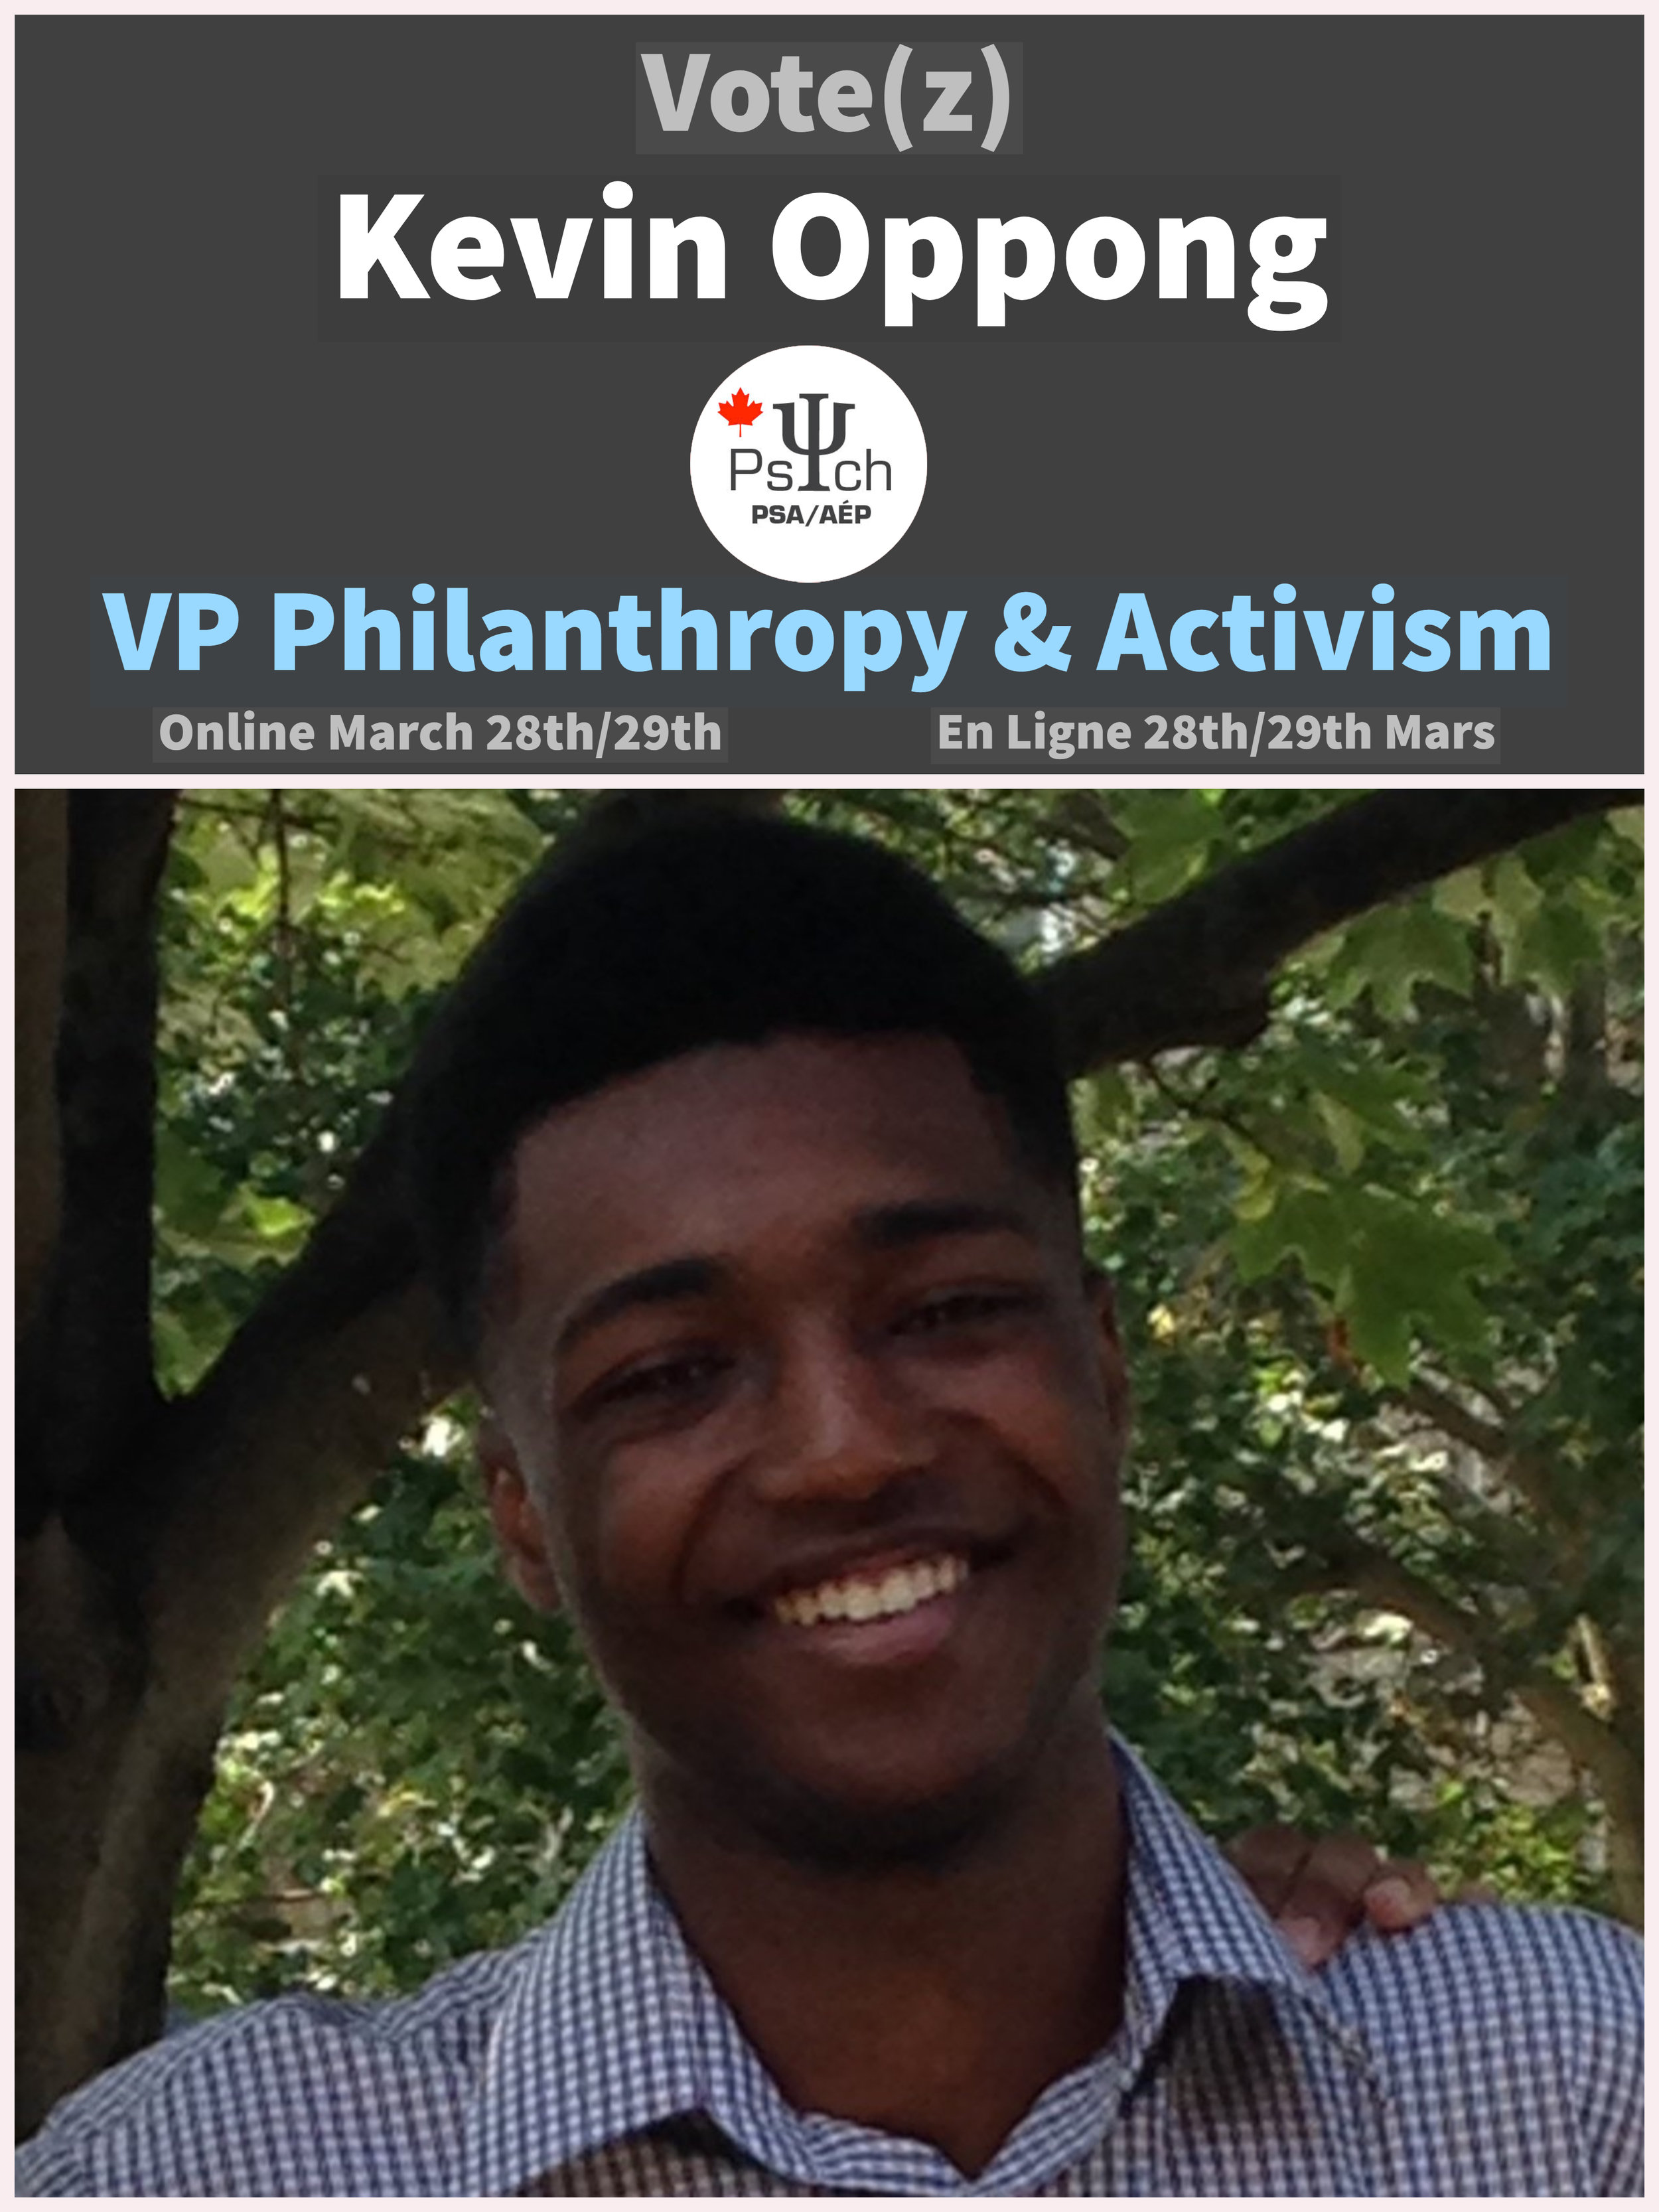 Vice-President of Philanthropy and Activism: Kevin Oppong - Hey! I'm Kevin Oppong, and I am second year student currently enrolled in the Honours B.A Psychology program with a minor in Criminology. This year, I am running to become PSA's next VP Philantrophy and Activism! Since I've started studying at uOttawa, I have proudly participated in Shinerama annually, as well as contributed to other humanitarian causes both inside and outside the university. I always enjoy taking an active part in these sorts of initiatives and I would love to adopt a leading role in maintaining the PSA's reputation through organizing charitable events and making an valuable impact on mental health issues!  If elected as your VP Philanthropy, I would love to:  -Organize a successful Shinerama and Relay for Life  -Introduce new ideas for fundraisers and activism events related to psychology  -Listen to students within the PSA and their wishes involving future philanthropic initiatives  -Promote and encourage student participation in PSA philanthropic events  -Proudly represent students at Philanthropic Round Tables  -Ensure transparency with funding and ensure all funds go toward psychology-related initiatives     Vote online March 28th/March 29th